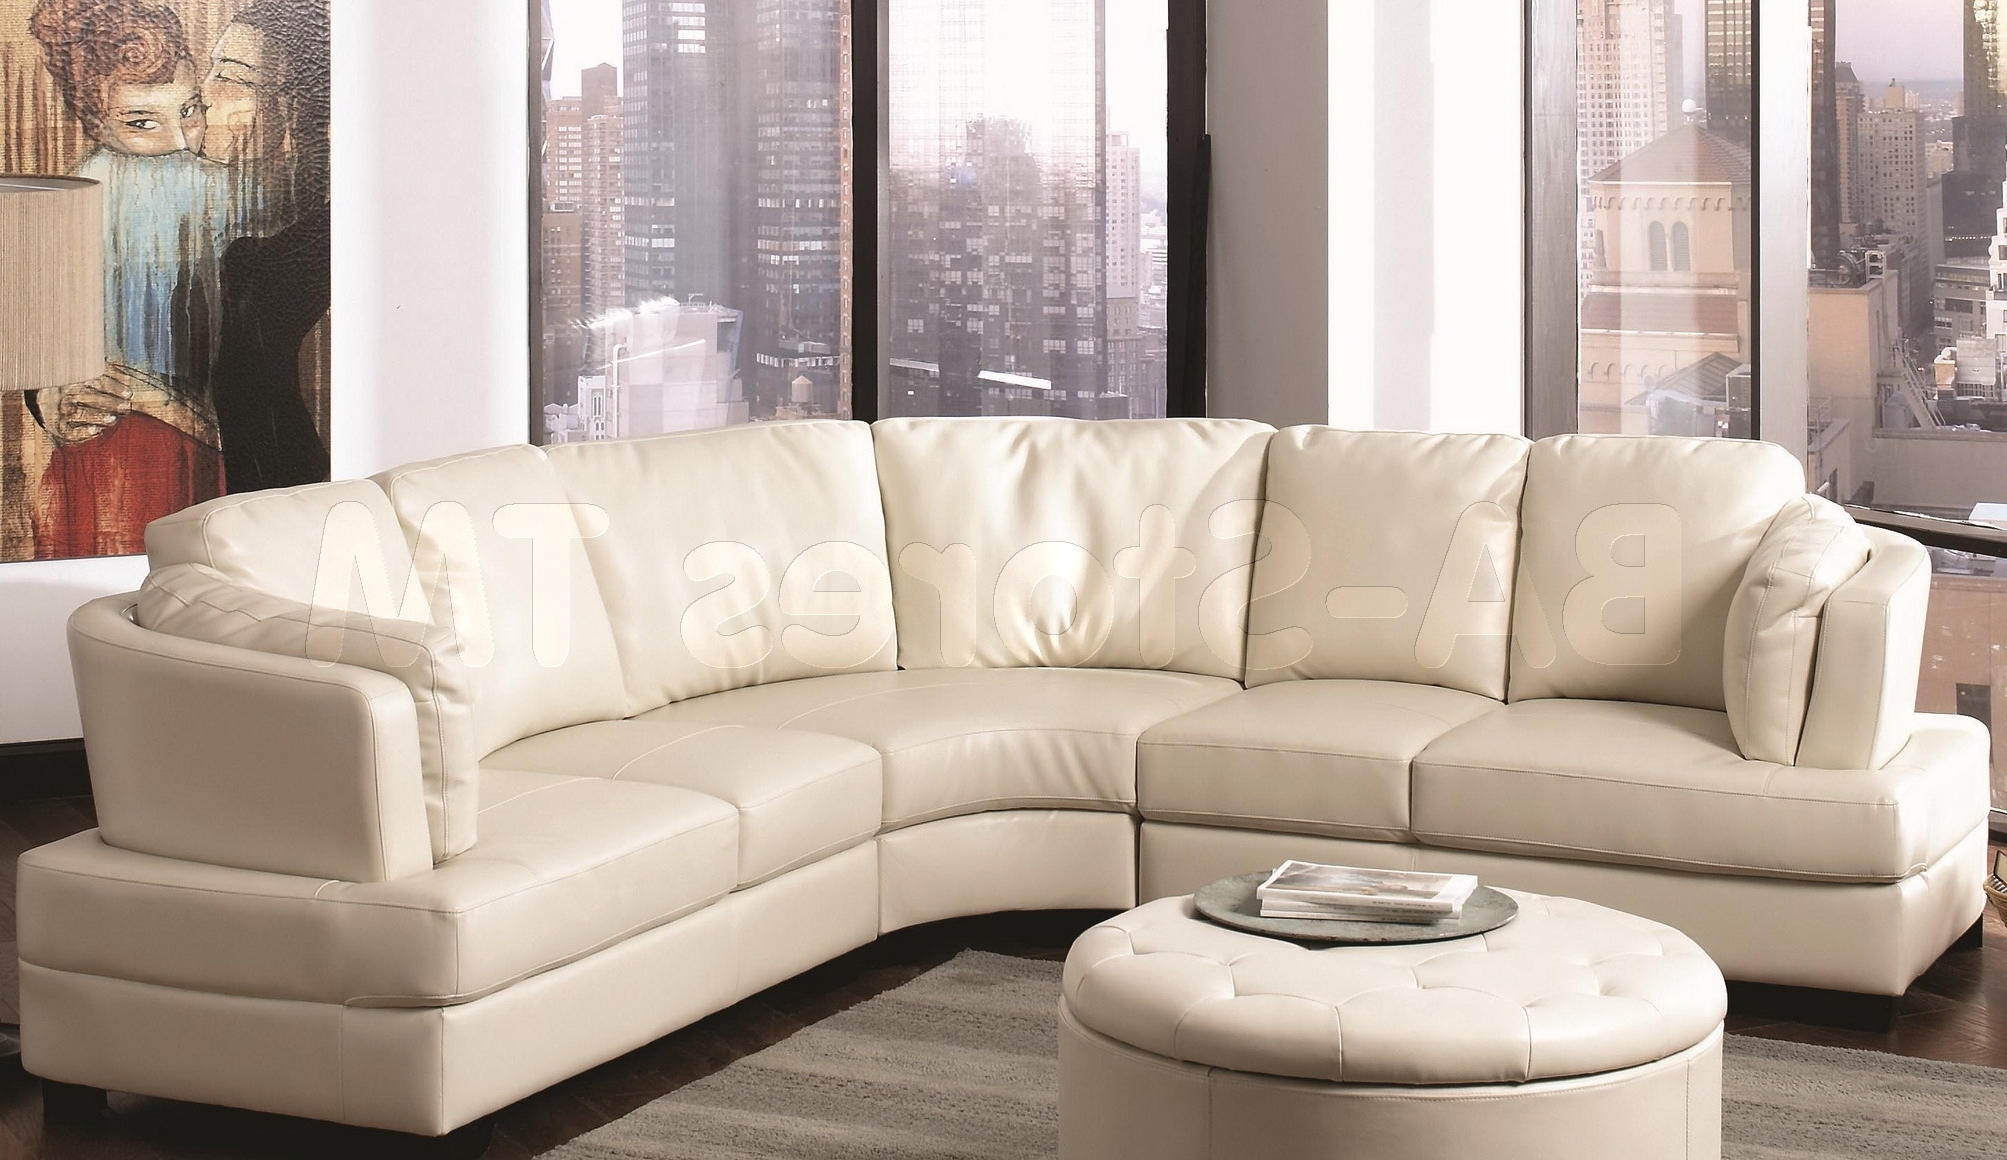 Picture of: View Photos Of Curved Sectional Sofas With Recliner Showing 15 Of 20 Photos